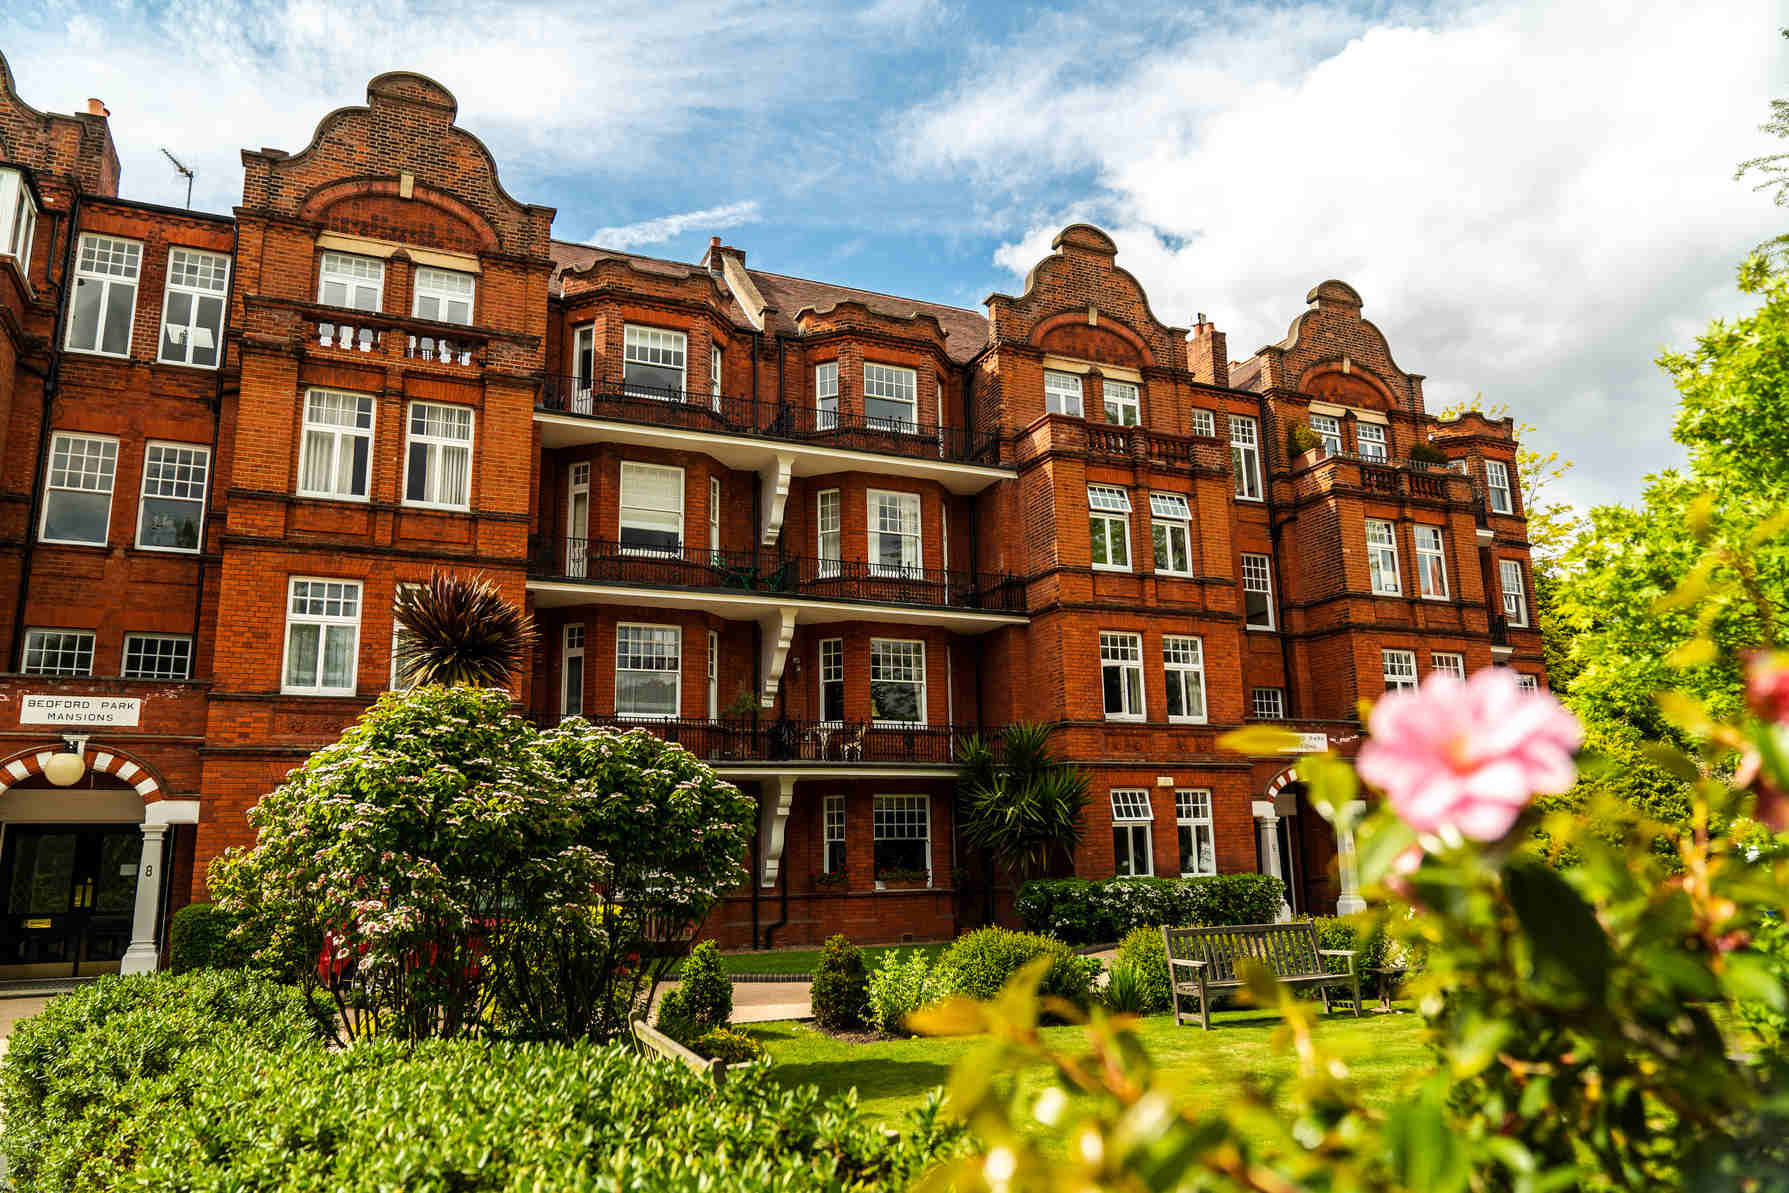 BPM3084 Victorian Penthouse London Chiswick Facade Red Bricks Flowers Gardens_Y